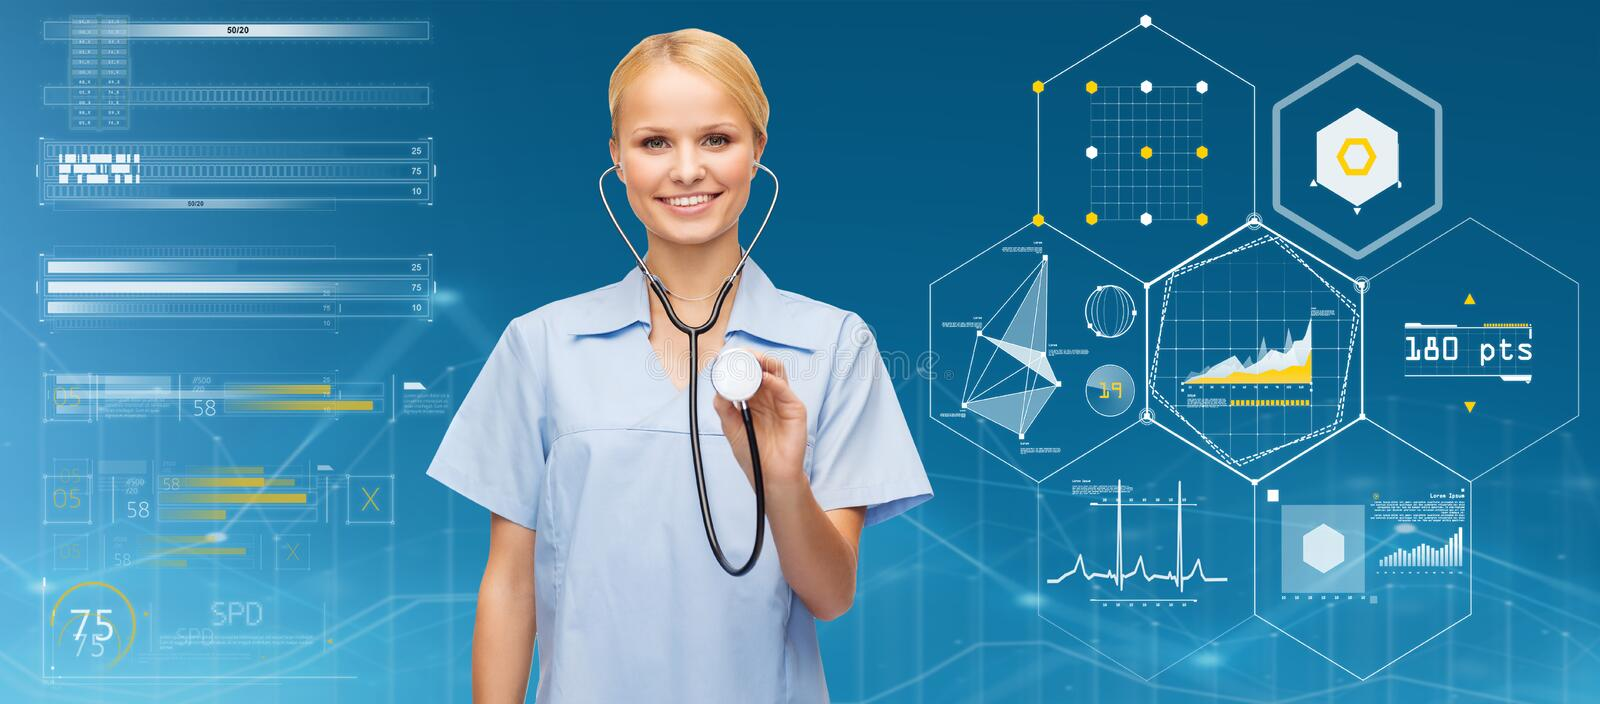 Smiling female doctor or nurse with stethoscope royalty free stock photo